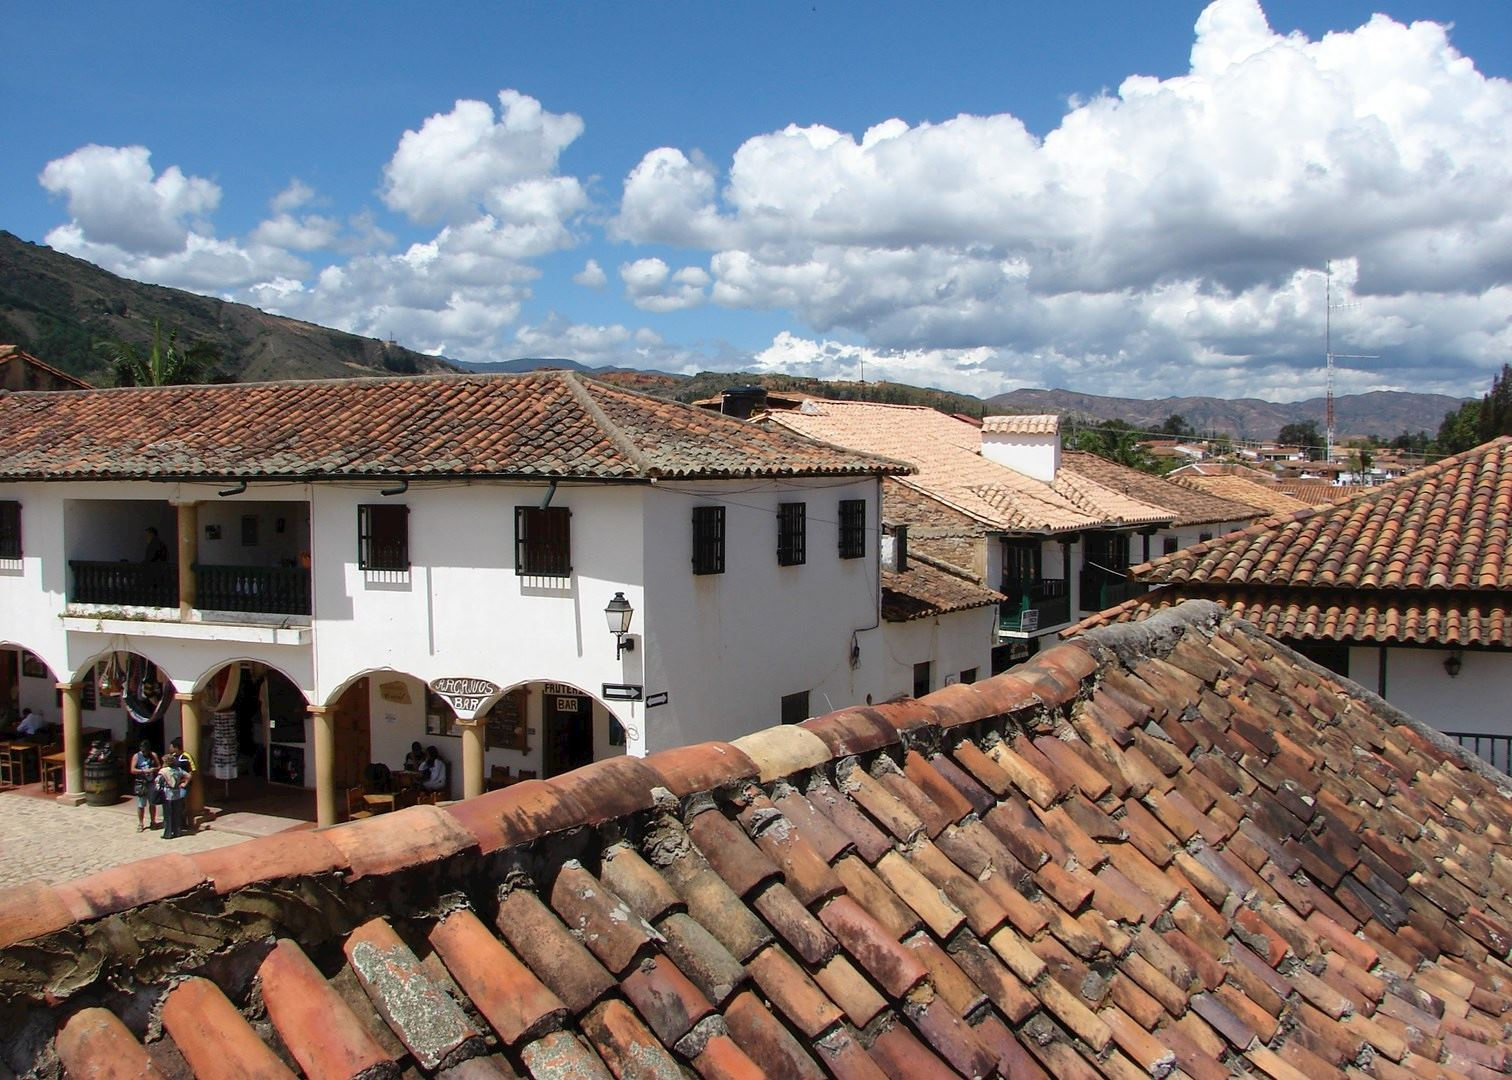 Tailor-made vacations to Colombia | Audley Travel